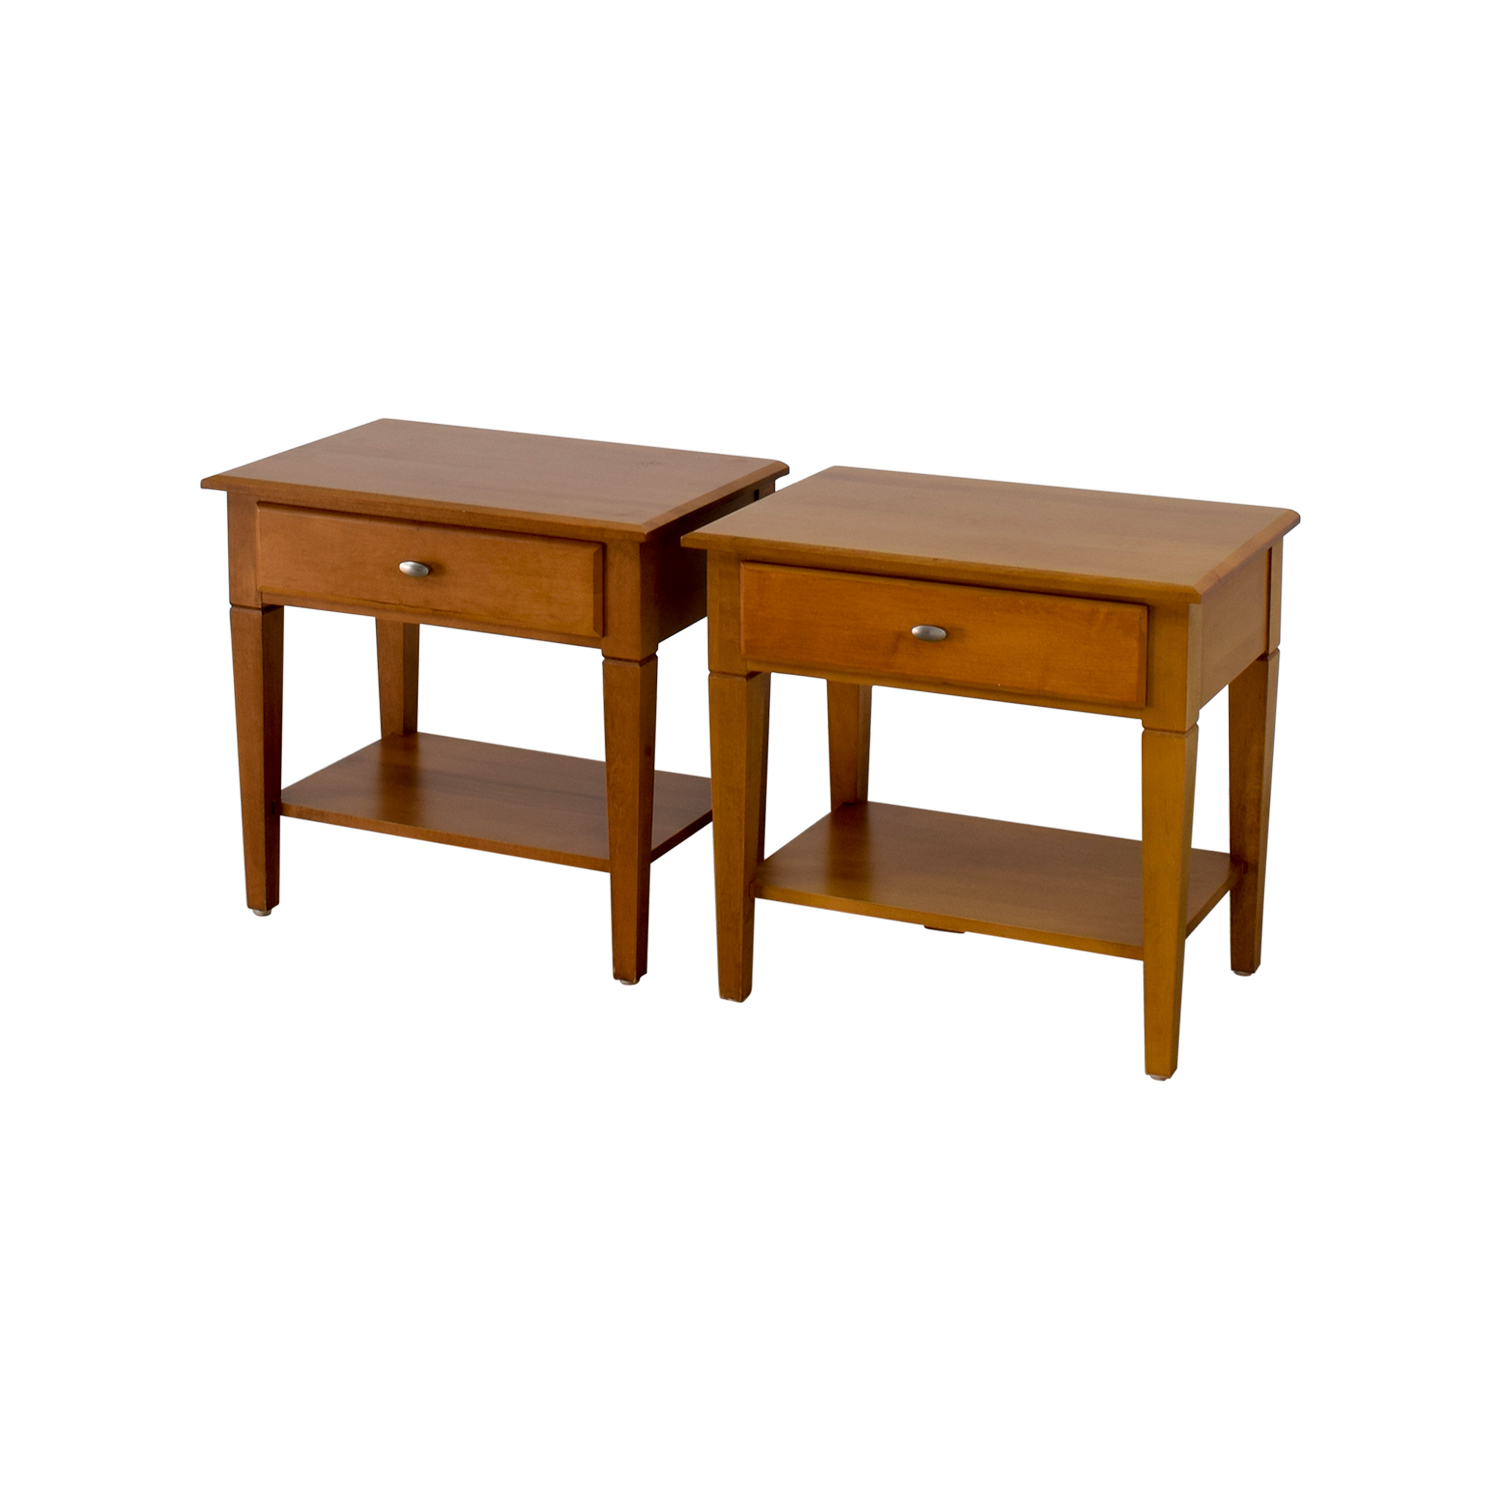 56 OFF Ethan Allen Ethan Allen Single Drawer End Tables  : second hand ethan allen single drawer end tables from furnishare.com size 1500 x 1500 jpeg 407kB